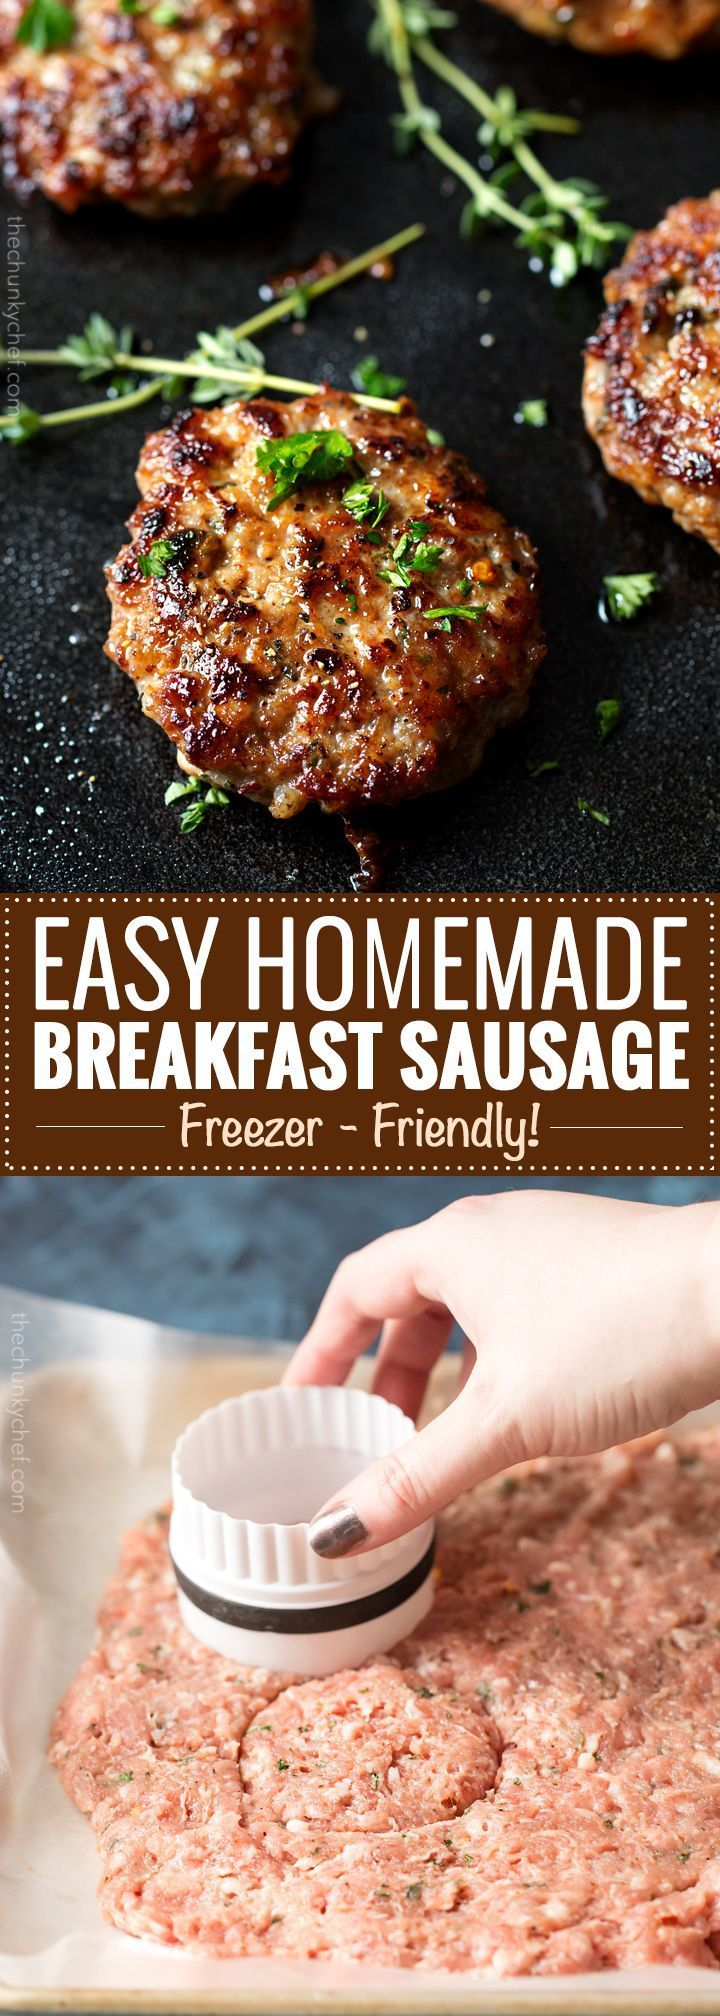 Homemade Maple breakfast sausages made with a combo of ground turkey and pork, savory herbs, and sweet maple syrup. The mouthwatering combo gives way to a low calorie homemade version of your favorite breakfast food! | http://thechunkychef.com